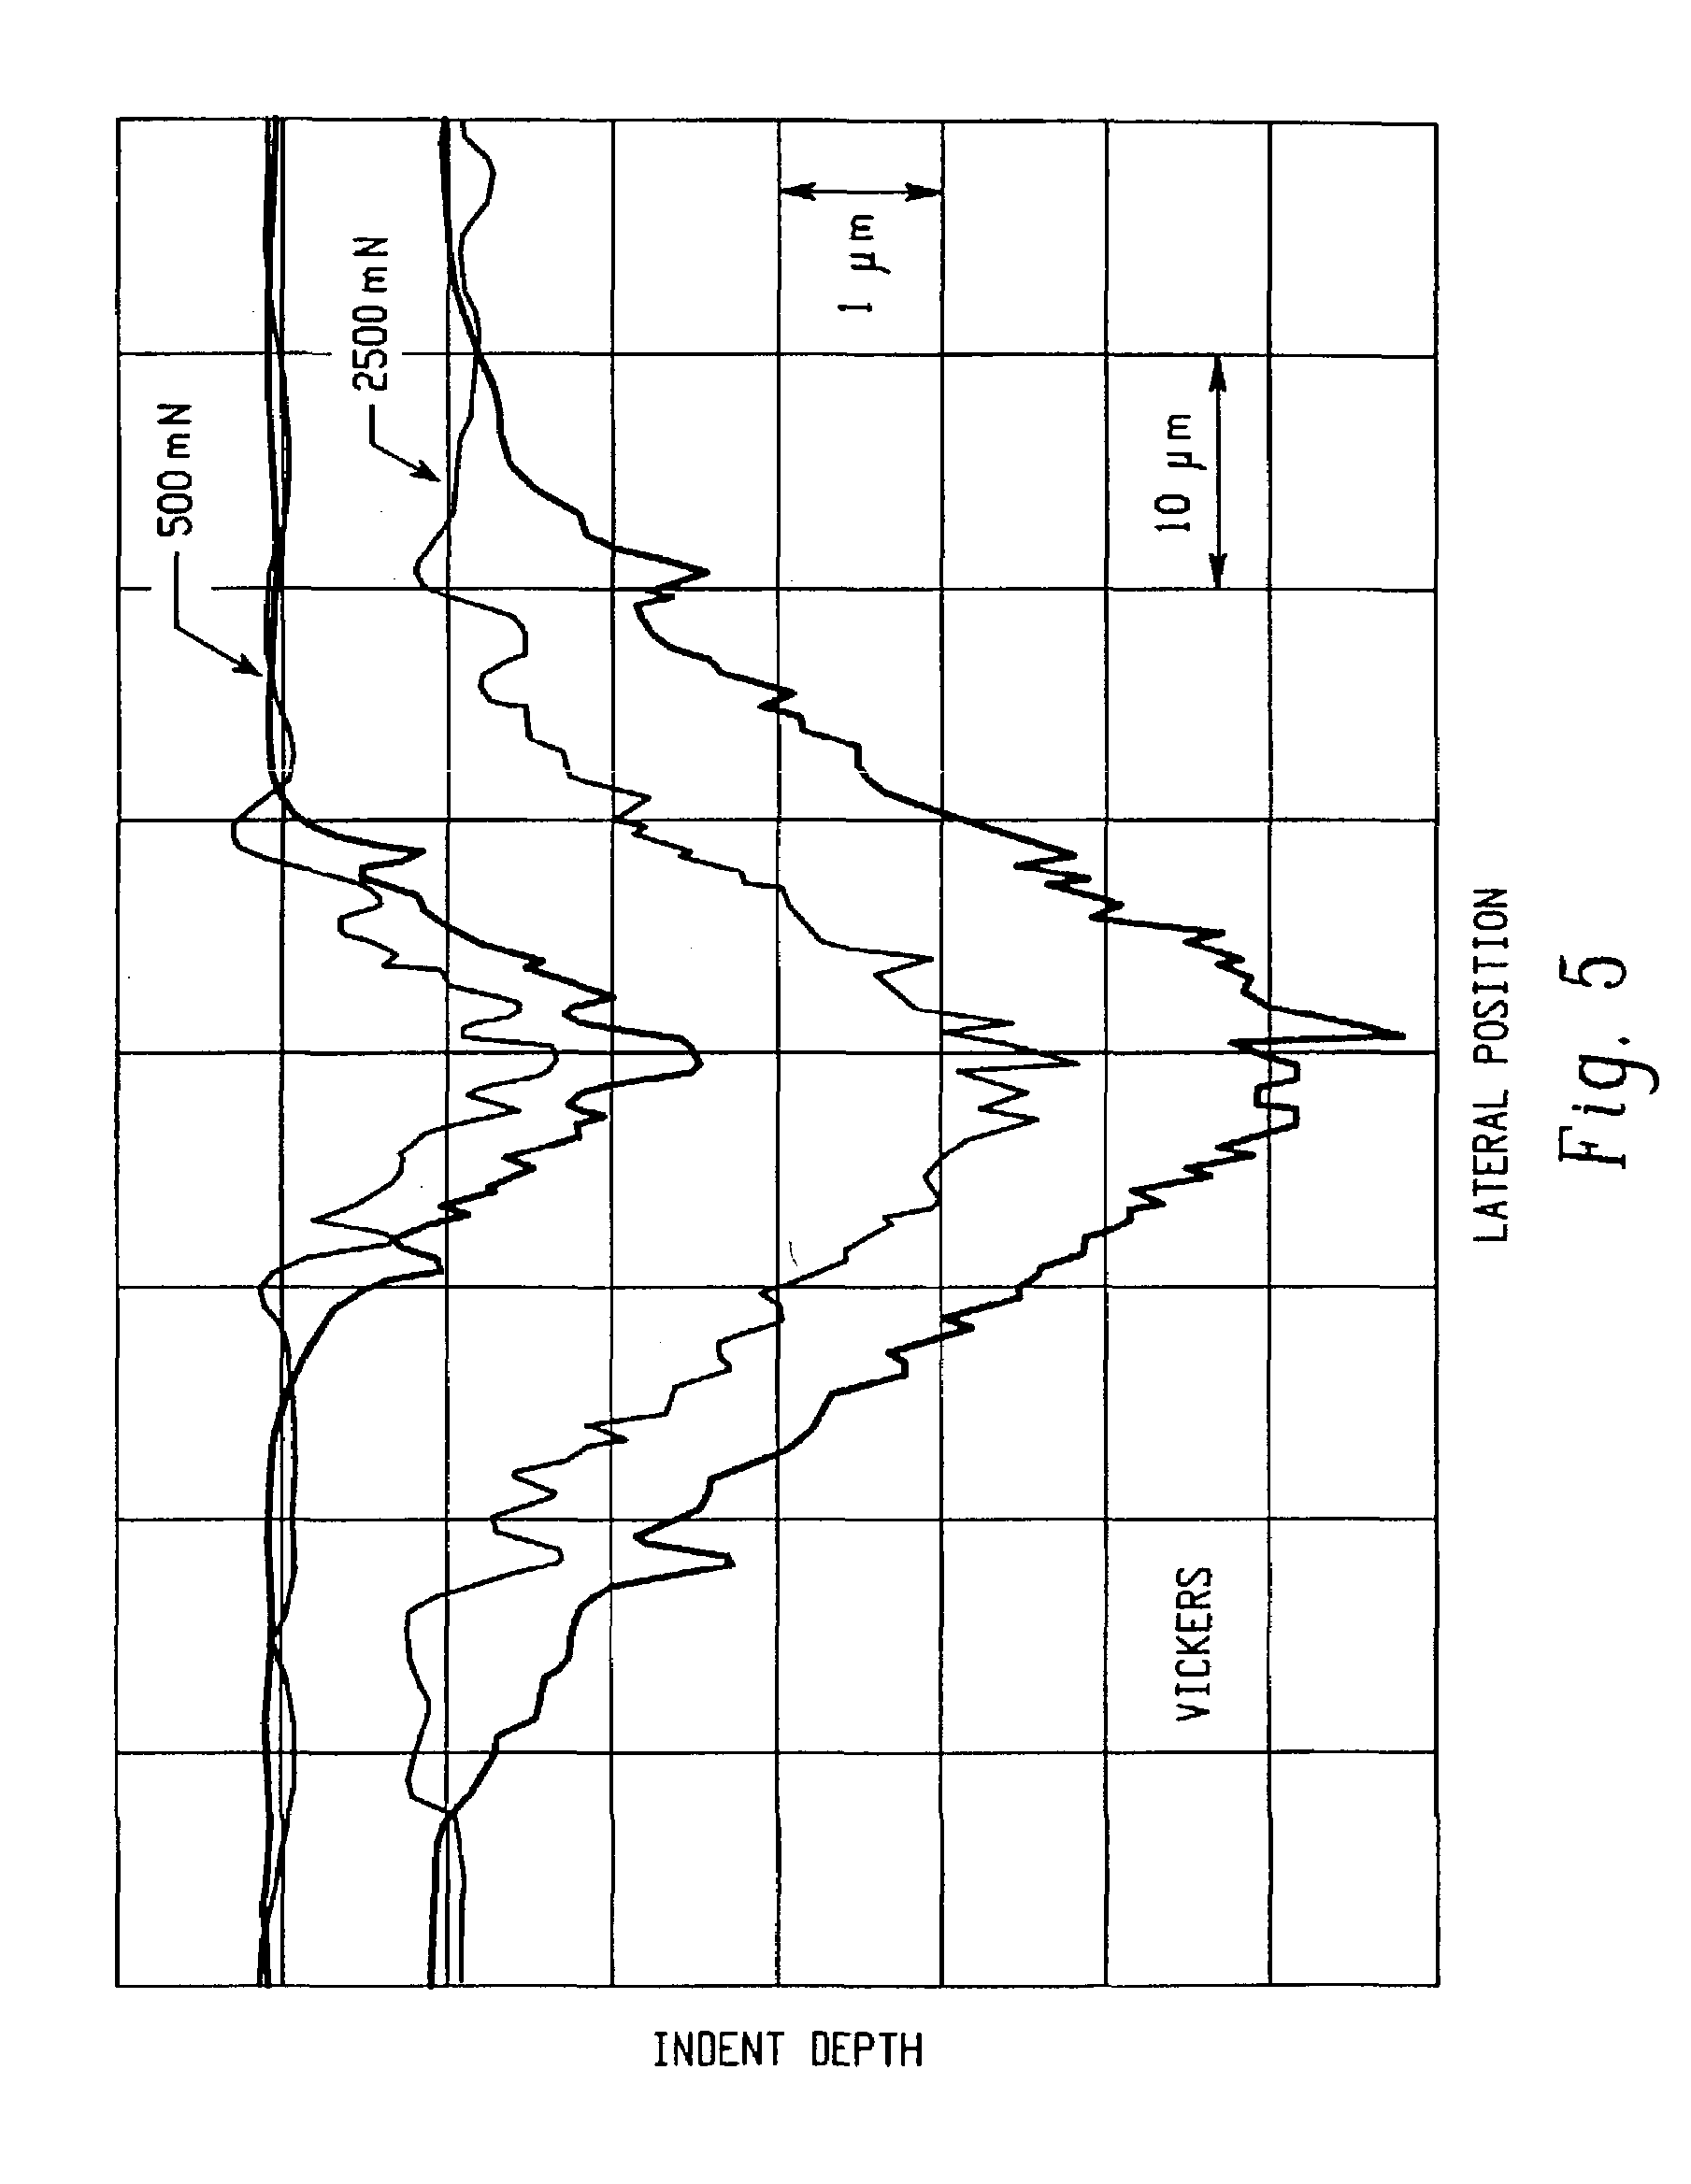 Depth of penetration in polymers going watch